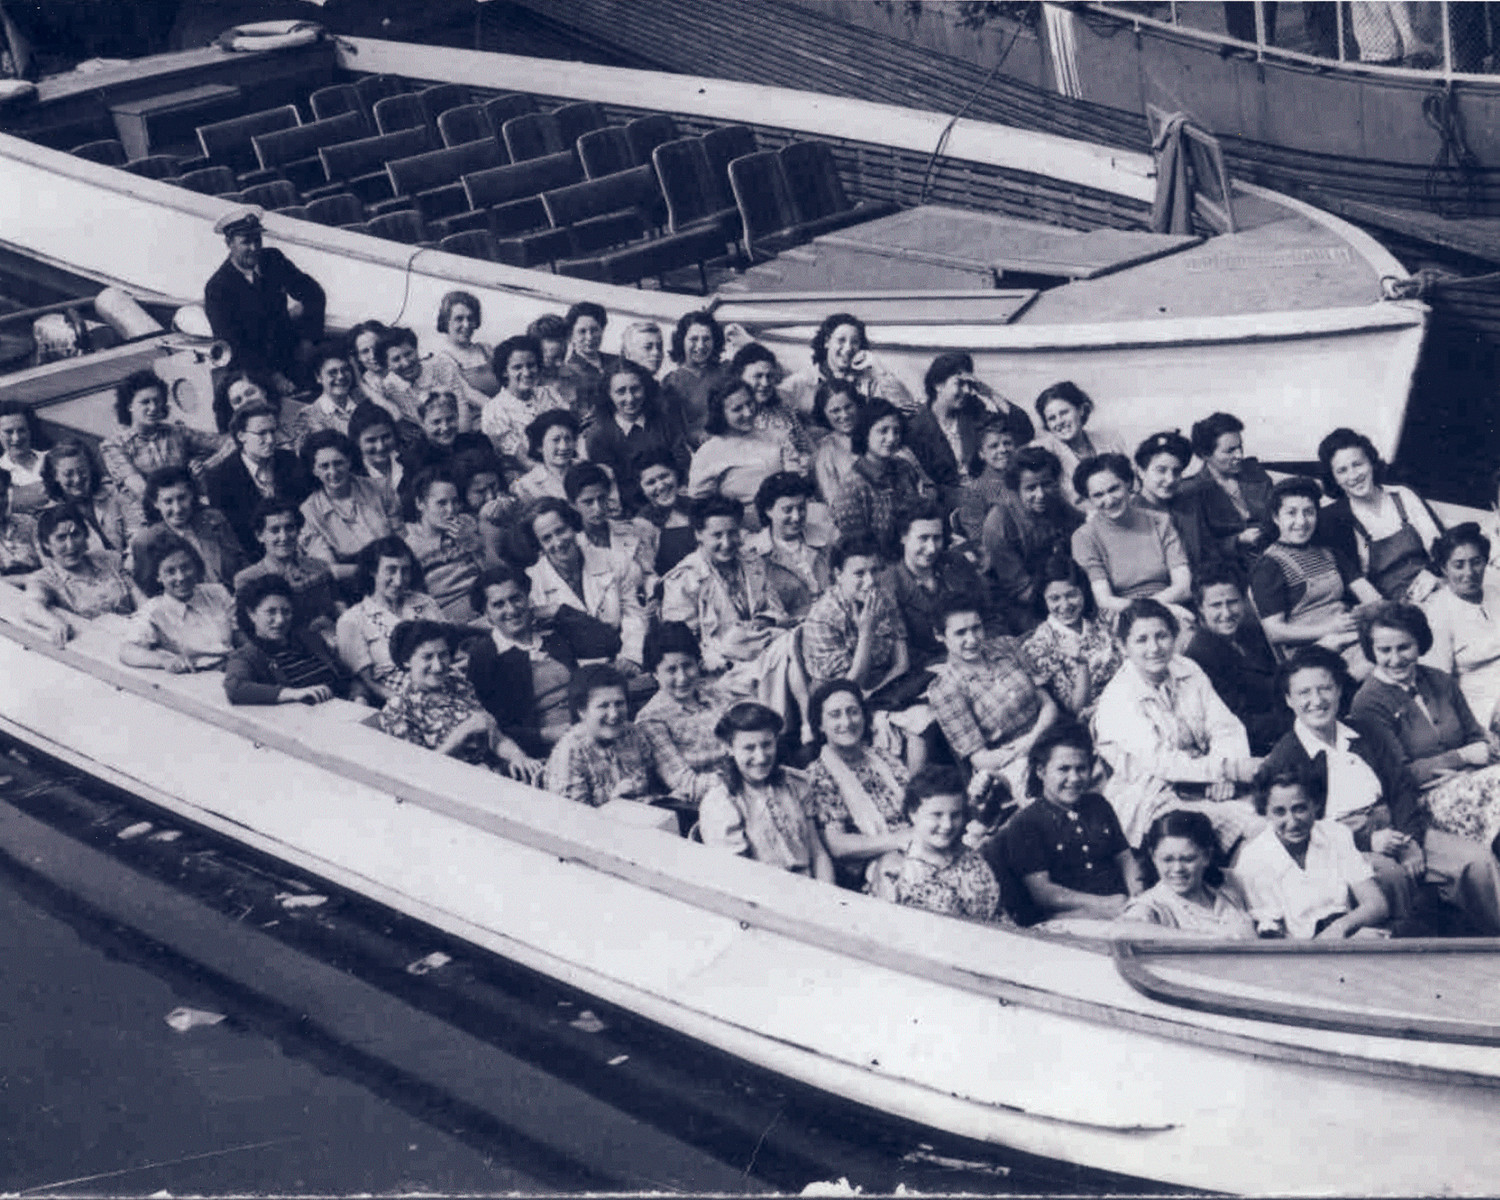 "Female Dutch Jewish survivors who were part of the ""Philips"" group go for a boat ride in Goteborg, Sweden.  Among those pictured are Lore Wertheim, Rita Noah, Betty Koppel, Ilse Heyman, Inge Weinberg, and Trude Leser.  The Kupferschlag sisters have been tentatively identified."